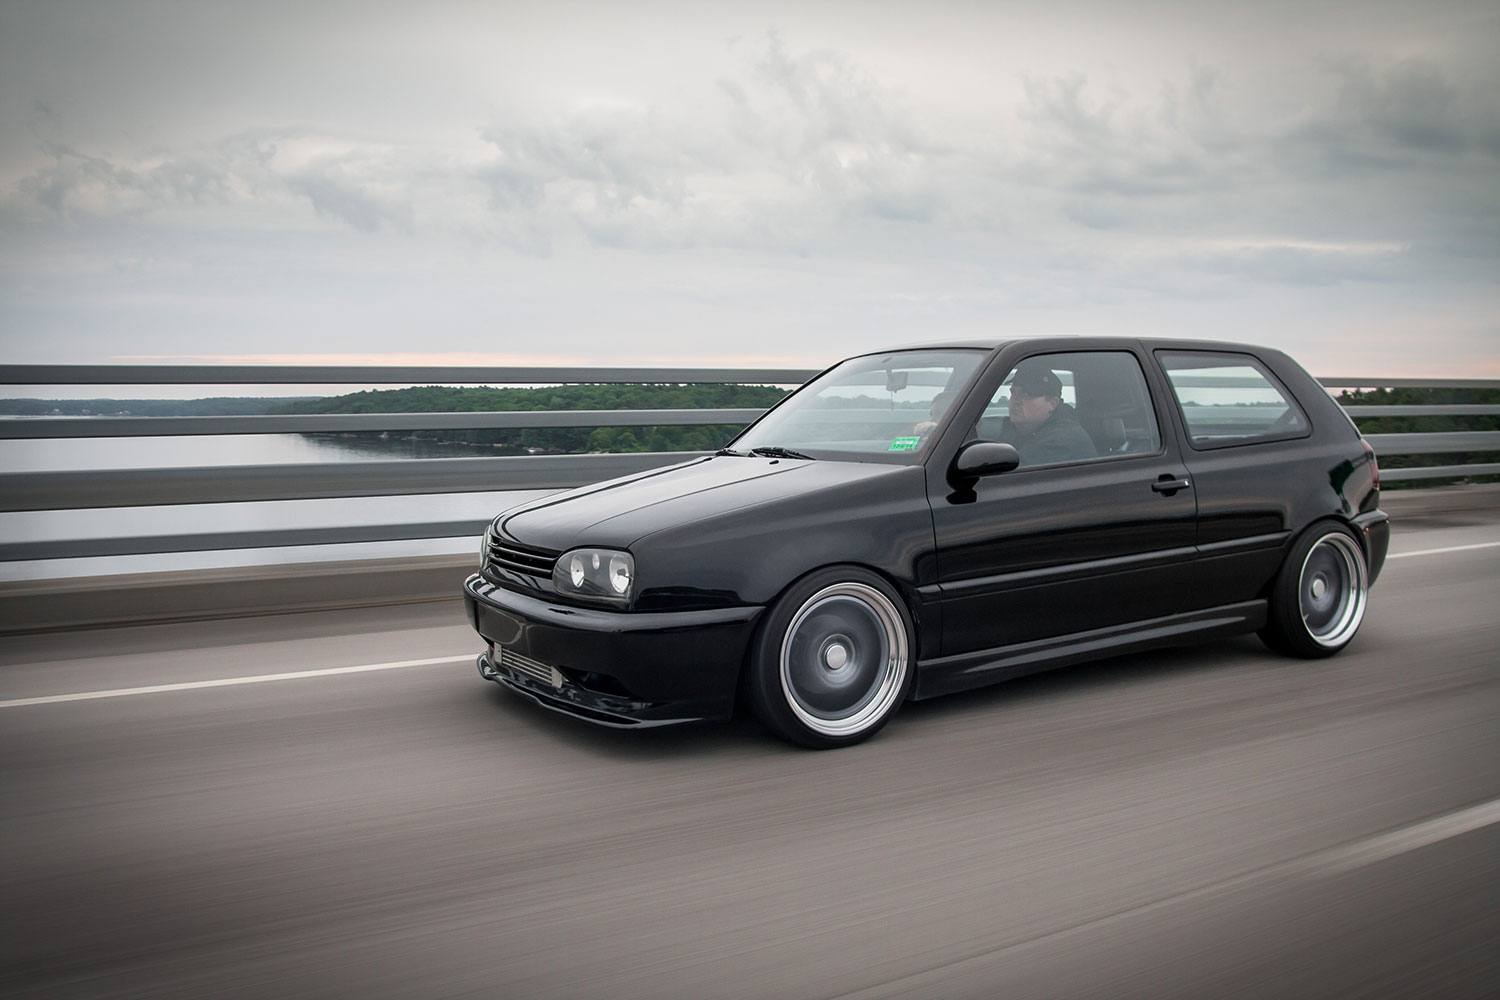 1995 Volkswagen Golf #6